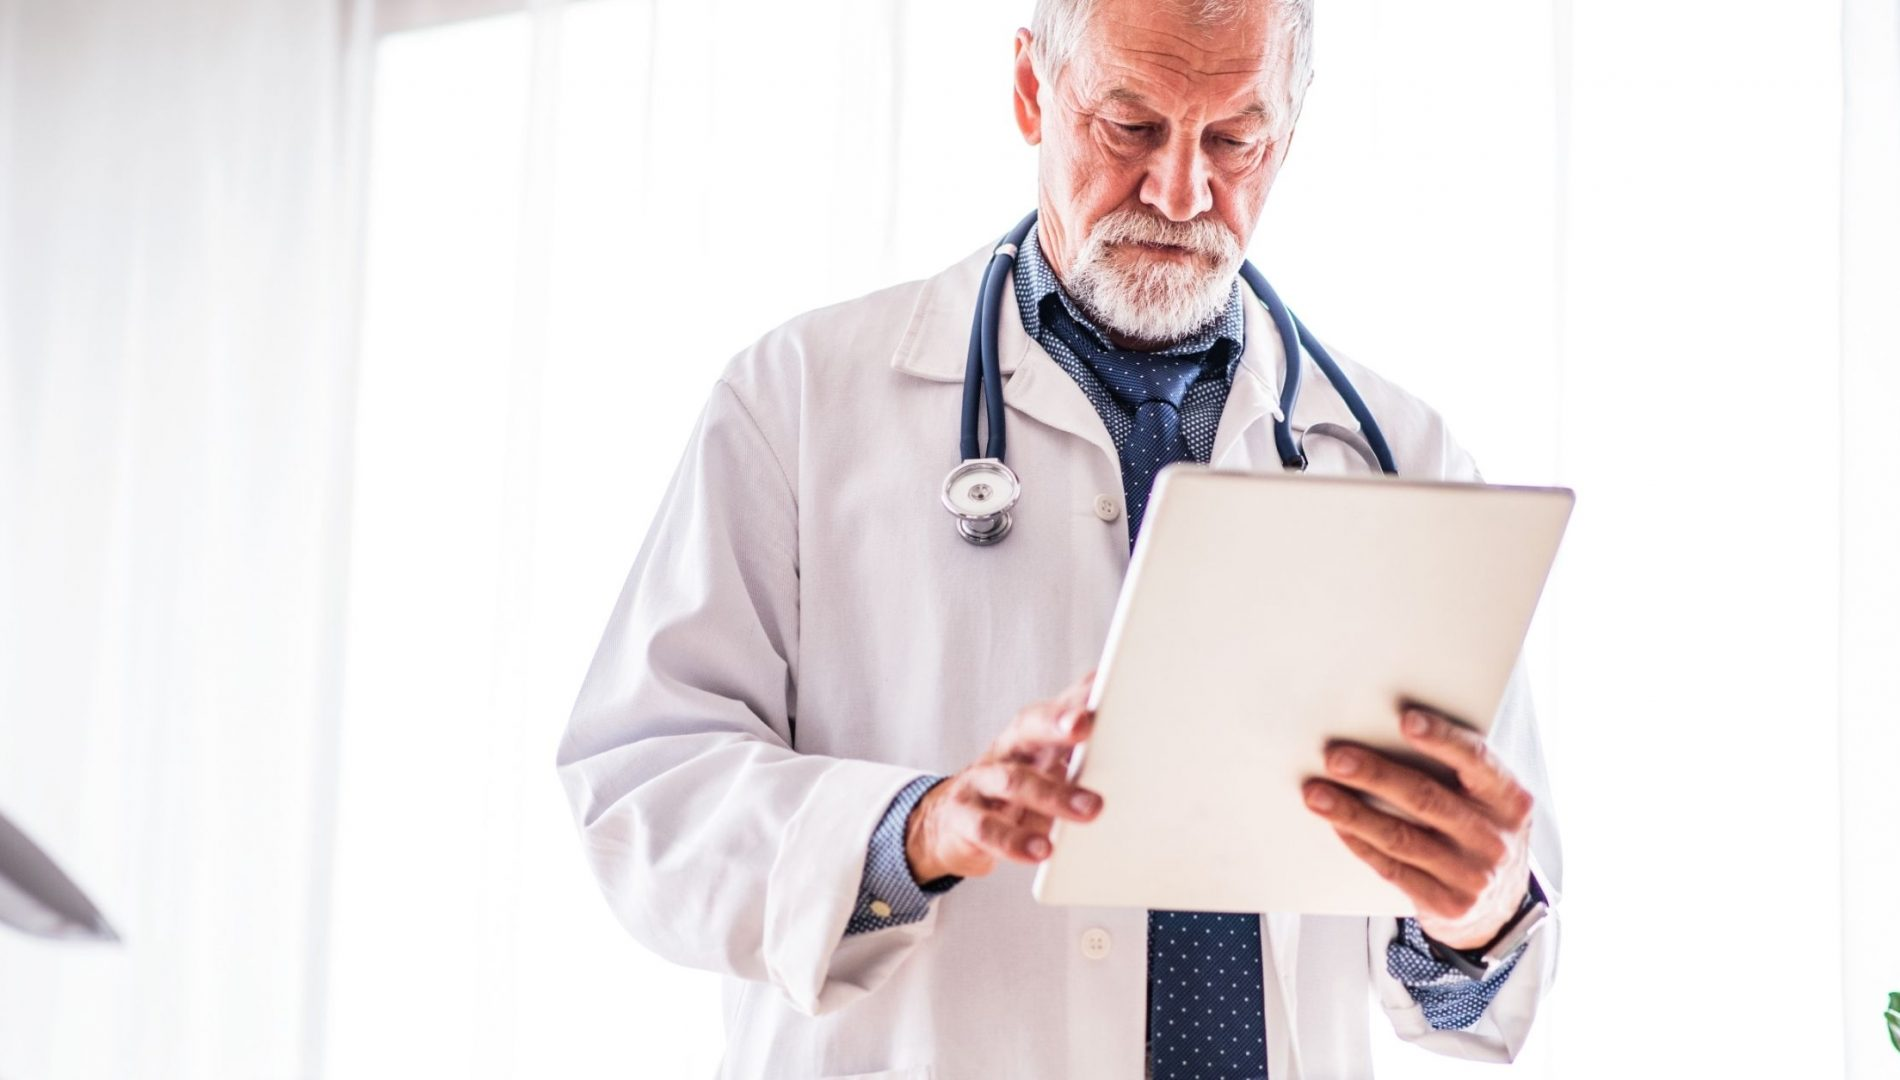 Looking for a Robust Healthcare IoT Solution for Improved Patient Care?